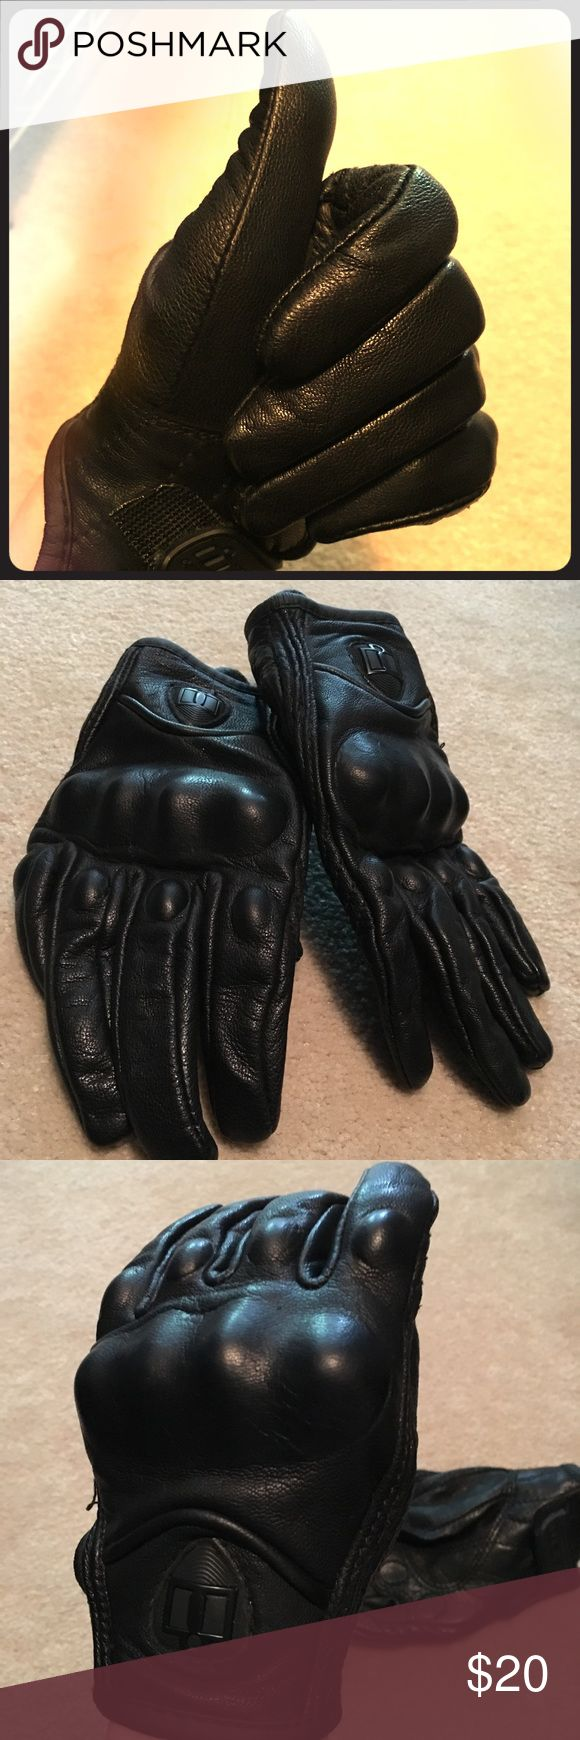 Tight leather motorcycle gloves Tight leather motorcycle gloves. Like new. Only worn a few times. Very clean and well cared for. ICON Accessories Gloves & Mittens